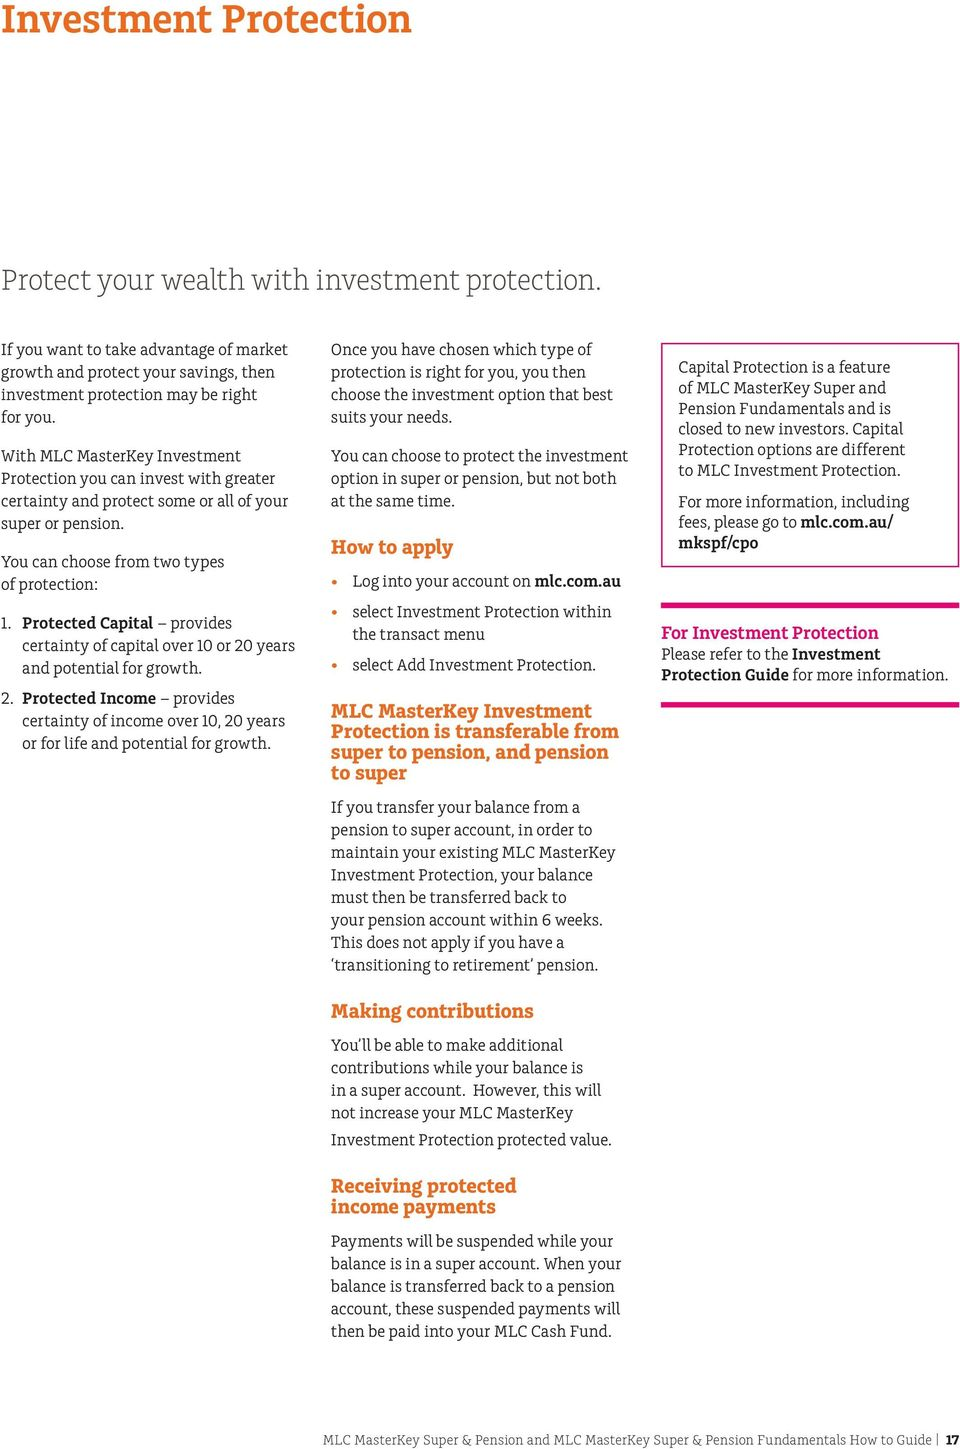 Protected Capital provides certainty of capital over 10 or 20 years and potential for growth. 2. Protected Income provides certainty of income over 10, 20 years or for life and potential for growth.